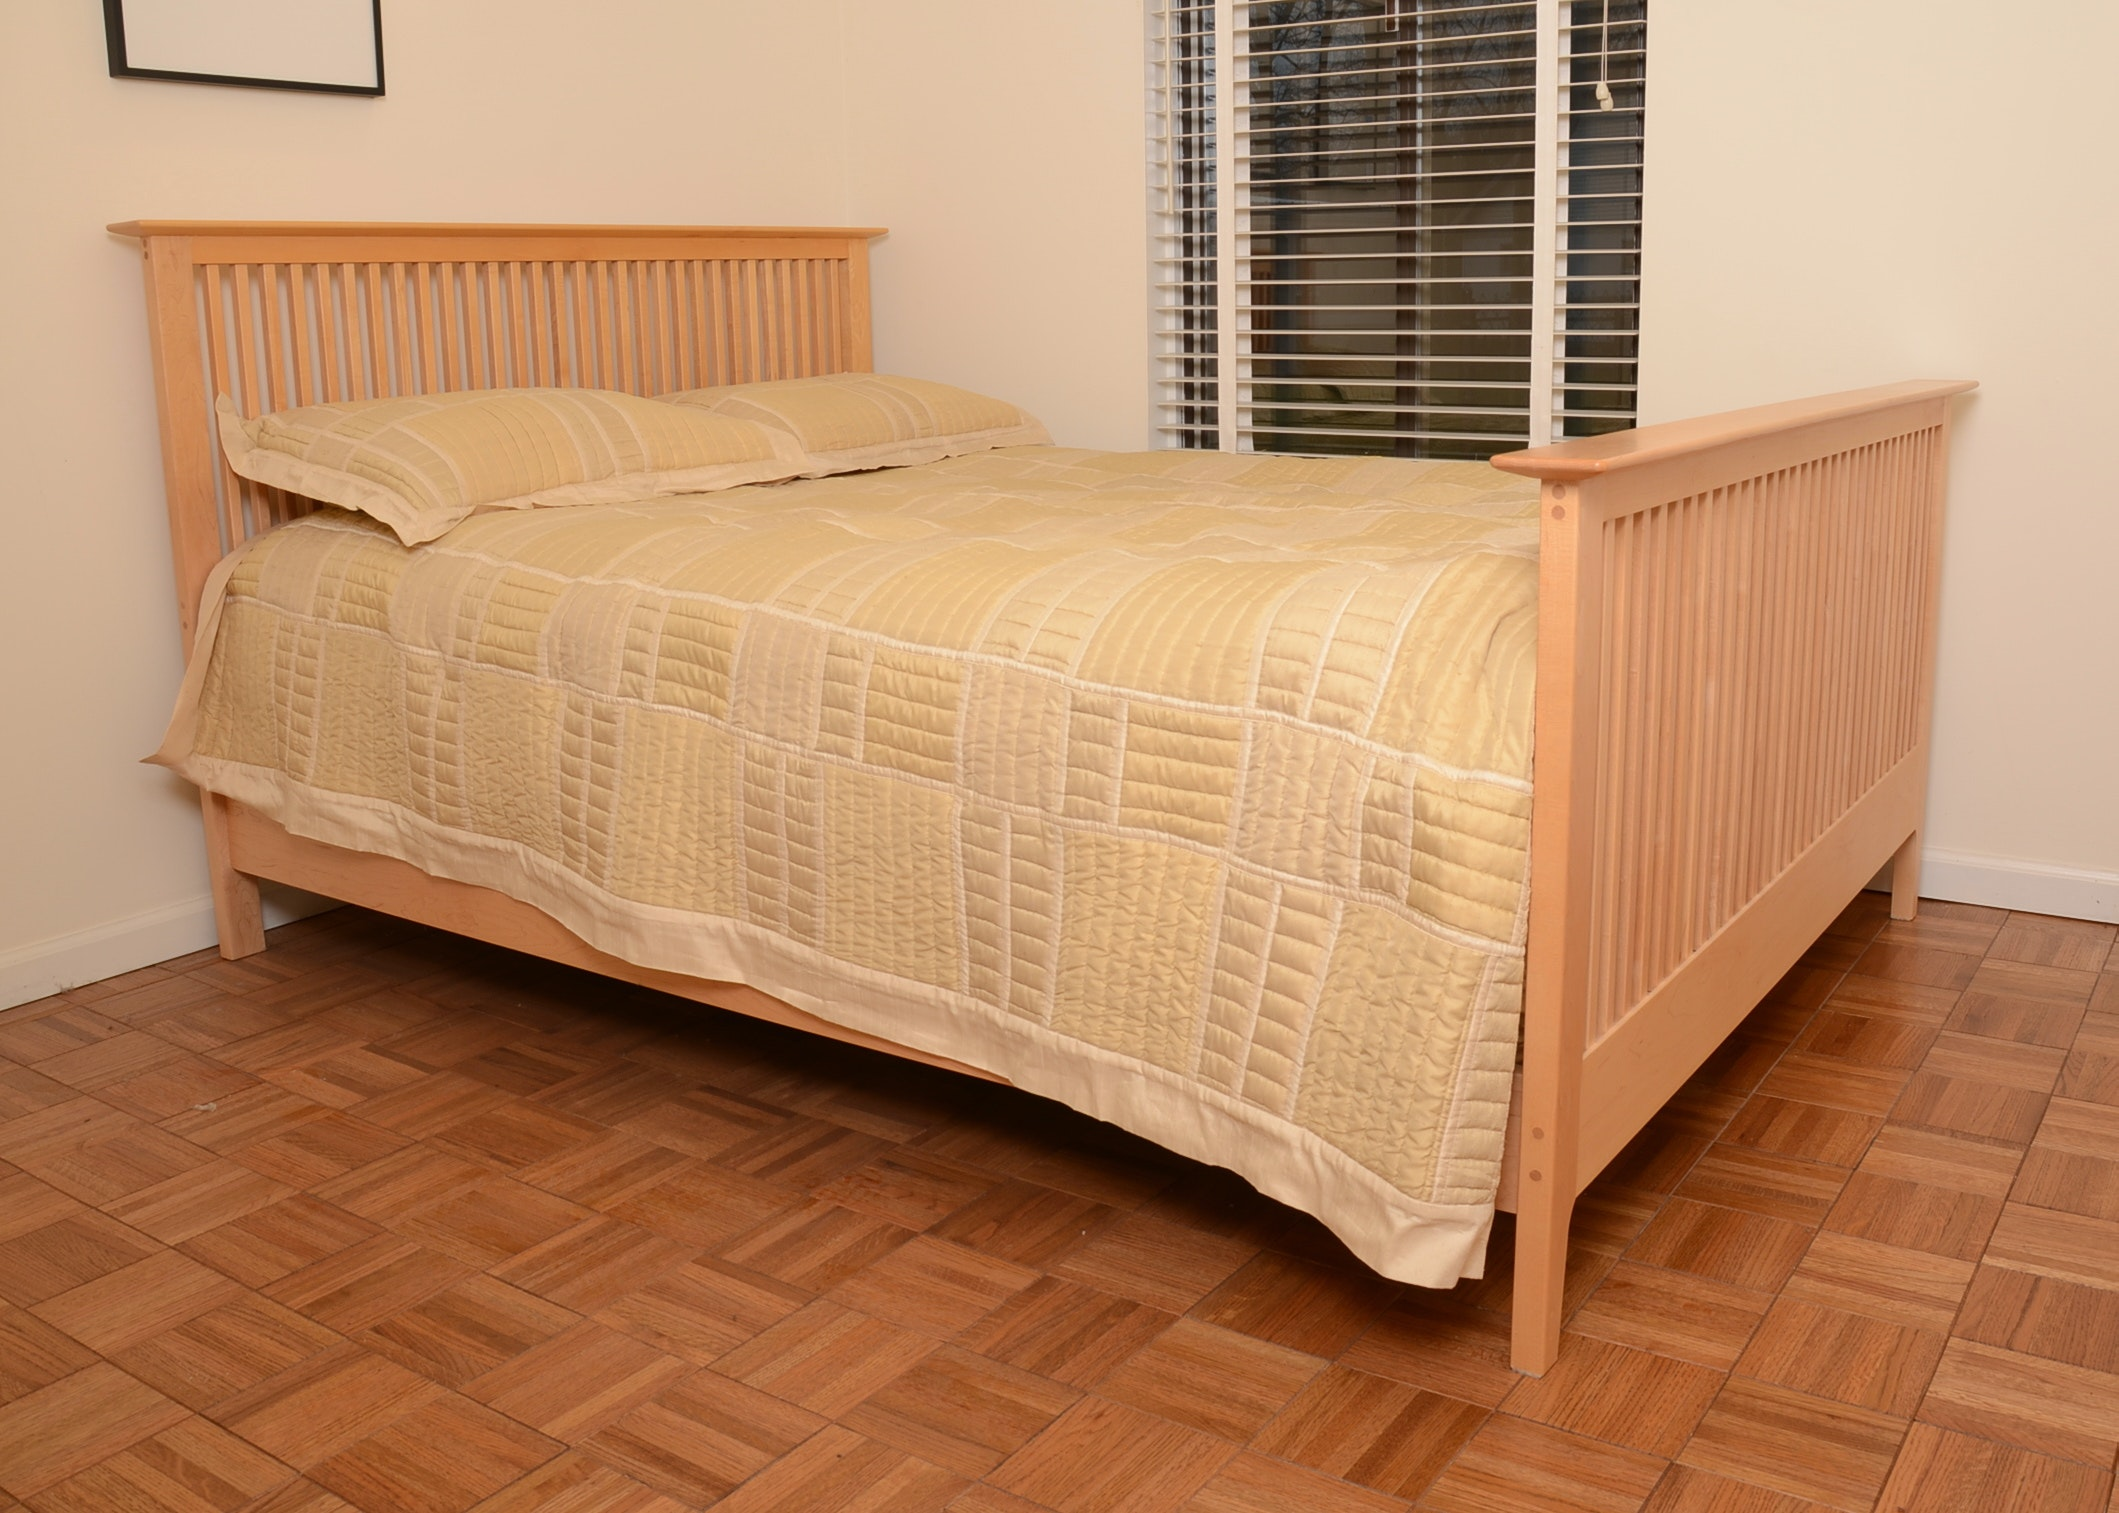 Contemporary Full Size Maple Spindle Bed Frame with